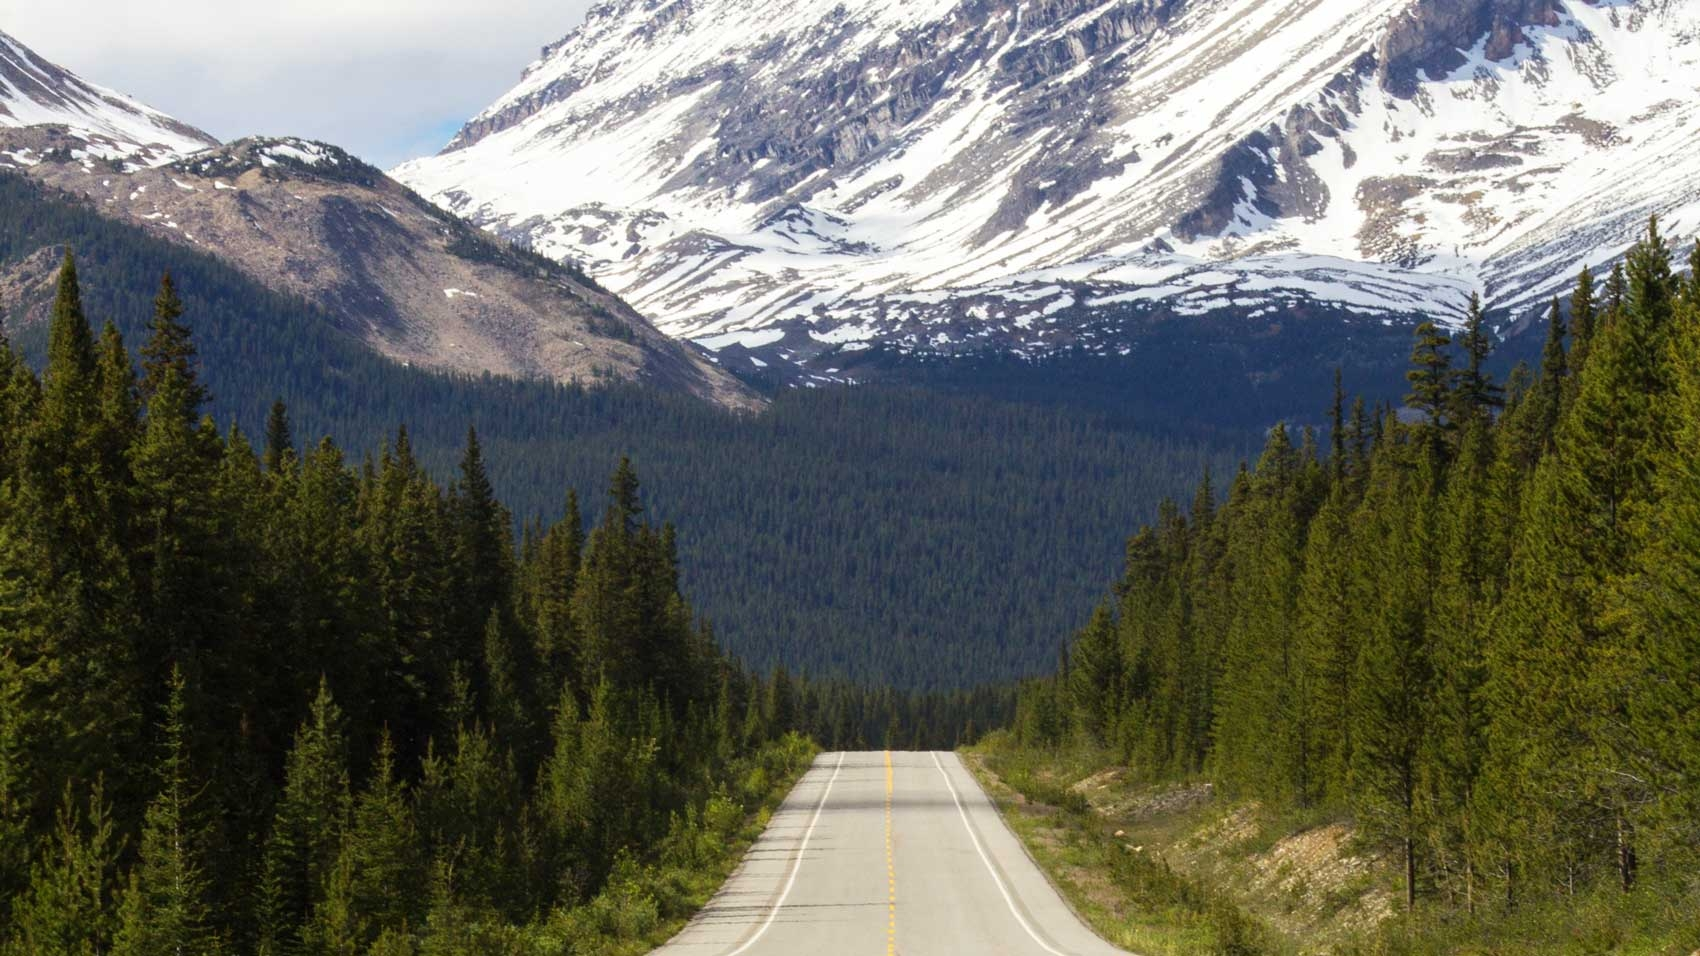 Highway heads straight towards majestic snowy mountains, surrounded by thick forests